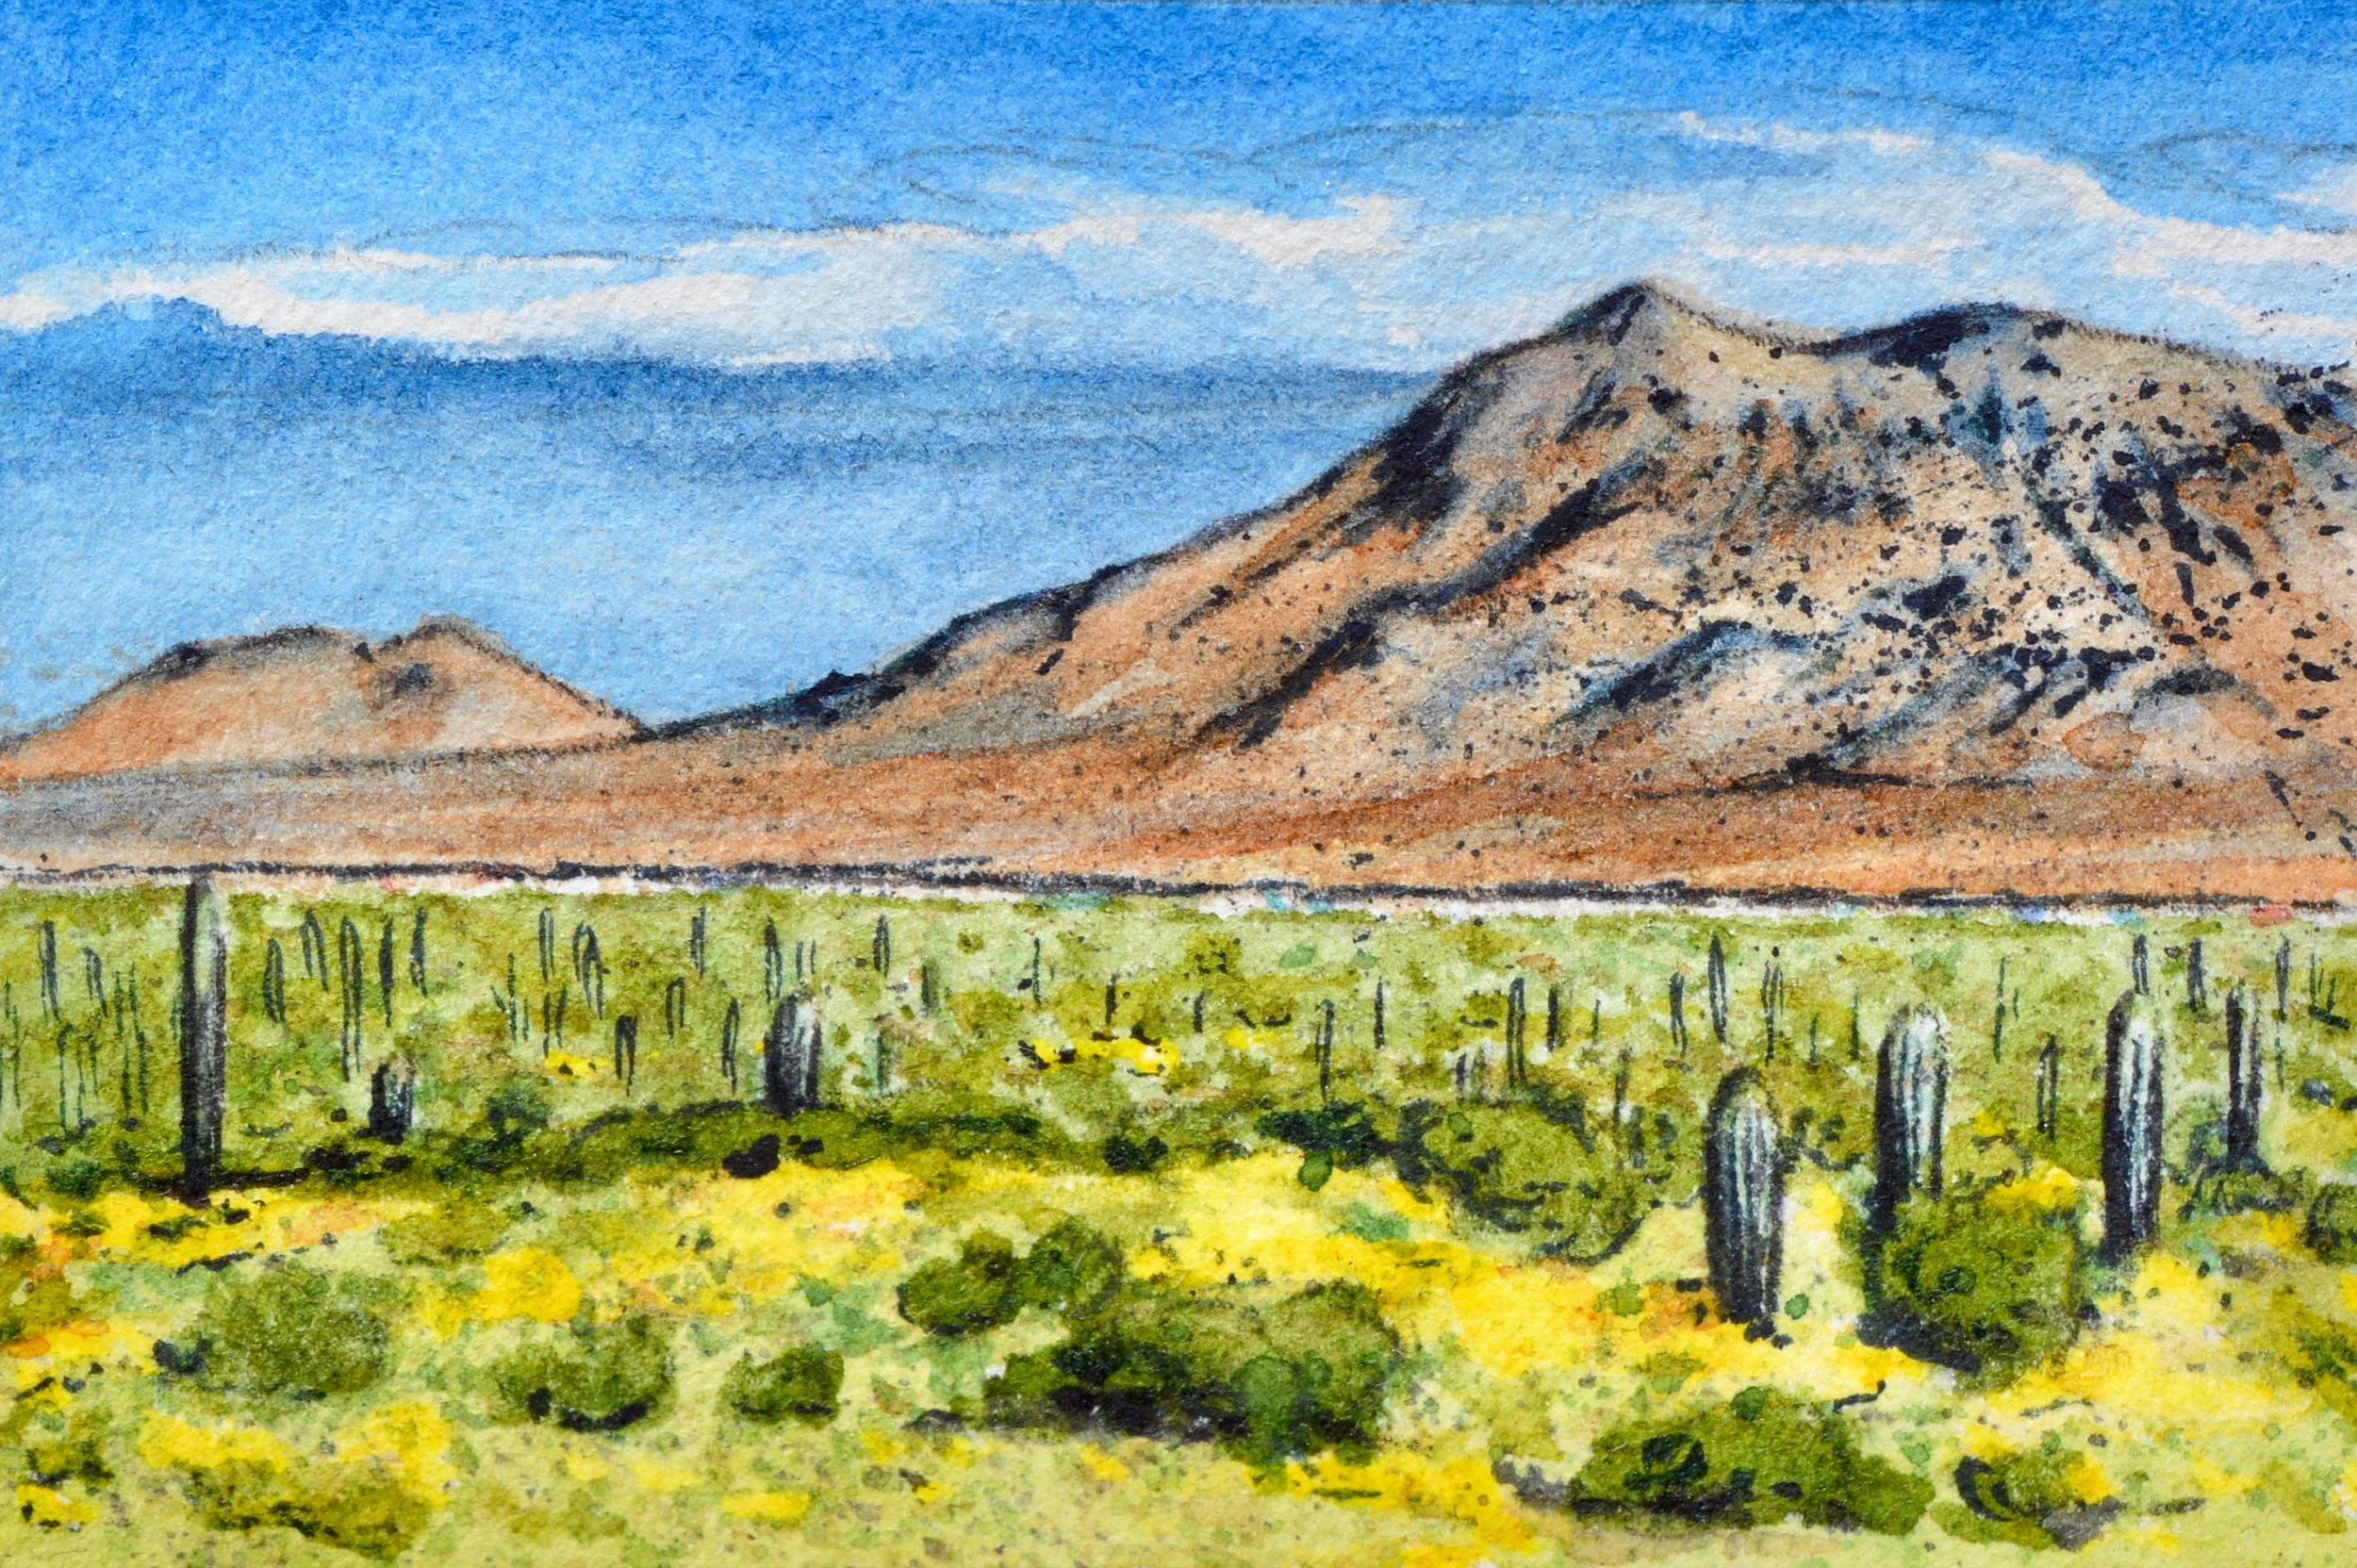 """Picacho Peak State Park, Arizona: 3/6,19, 9:06:01"" SOLD 2x3"""